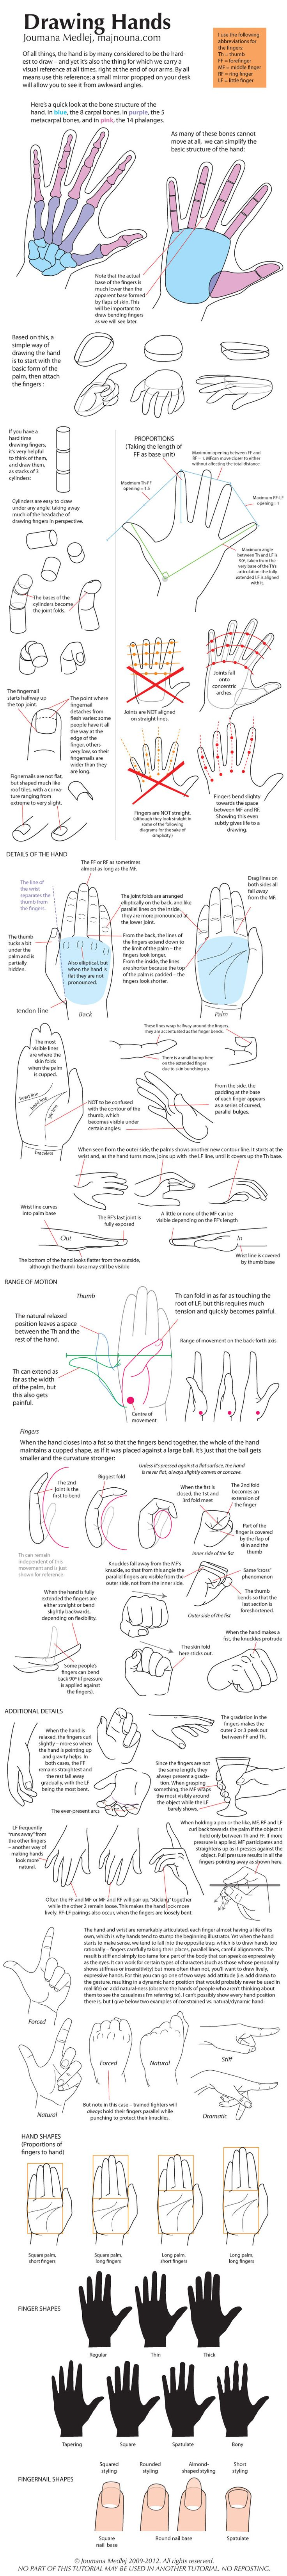 Drawing Hands by Majnouna on deviantART - she sells a book (e or hard copy) with similar guides for the entire body, including facial expressions